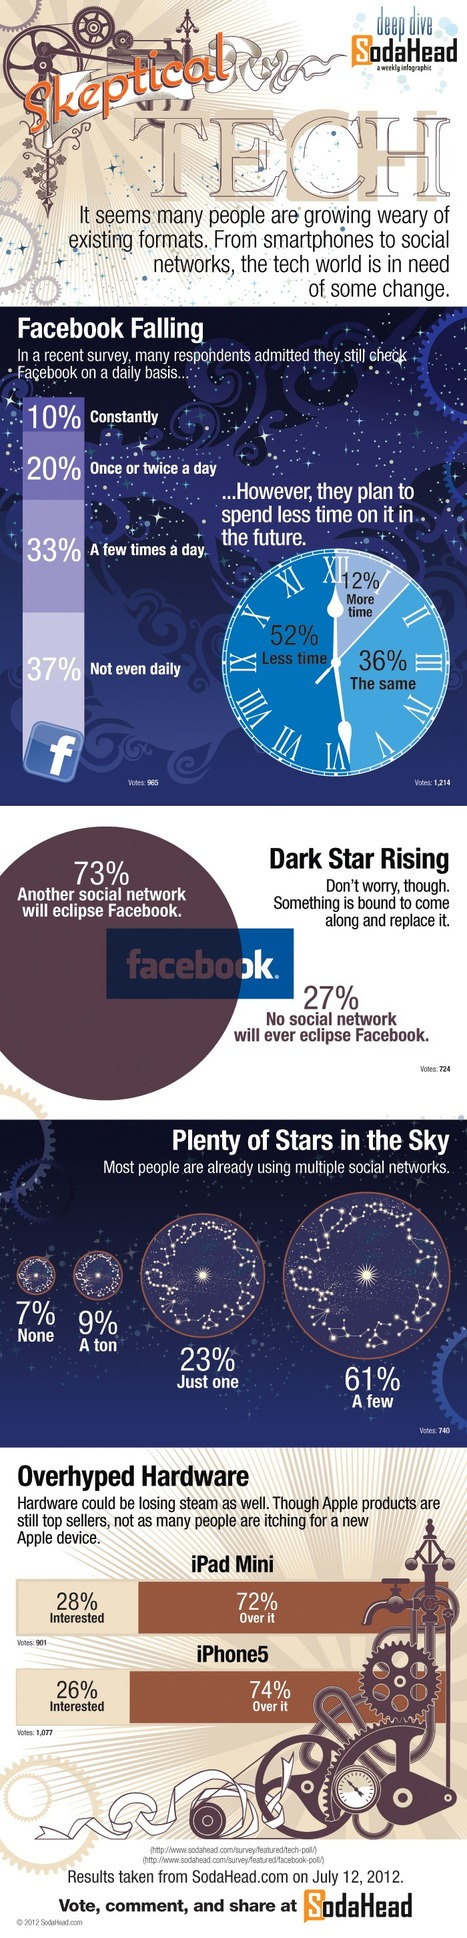 Facebook vs Twitter #infographic /@BerriePelser | Marketing Local Business | Scoop.it